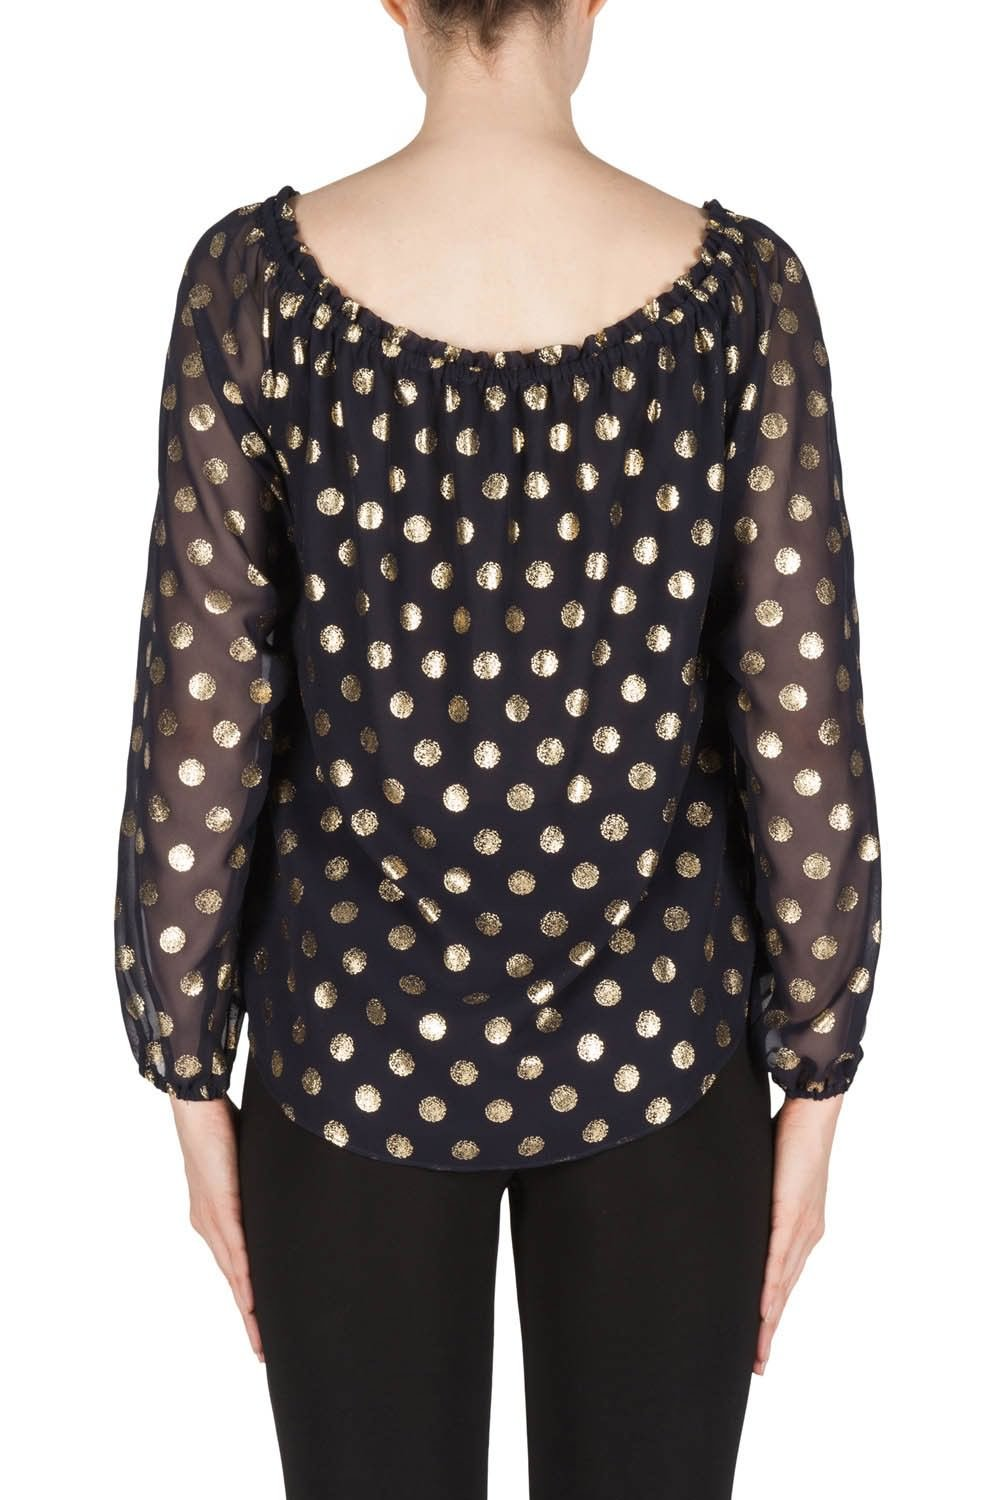 Joseph Ribkoff Midnight Blue/Gold Top With Polka Dot Details Style 181608 by Joseph Ribkoff (Image #3)